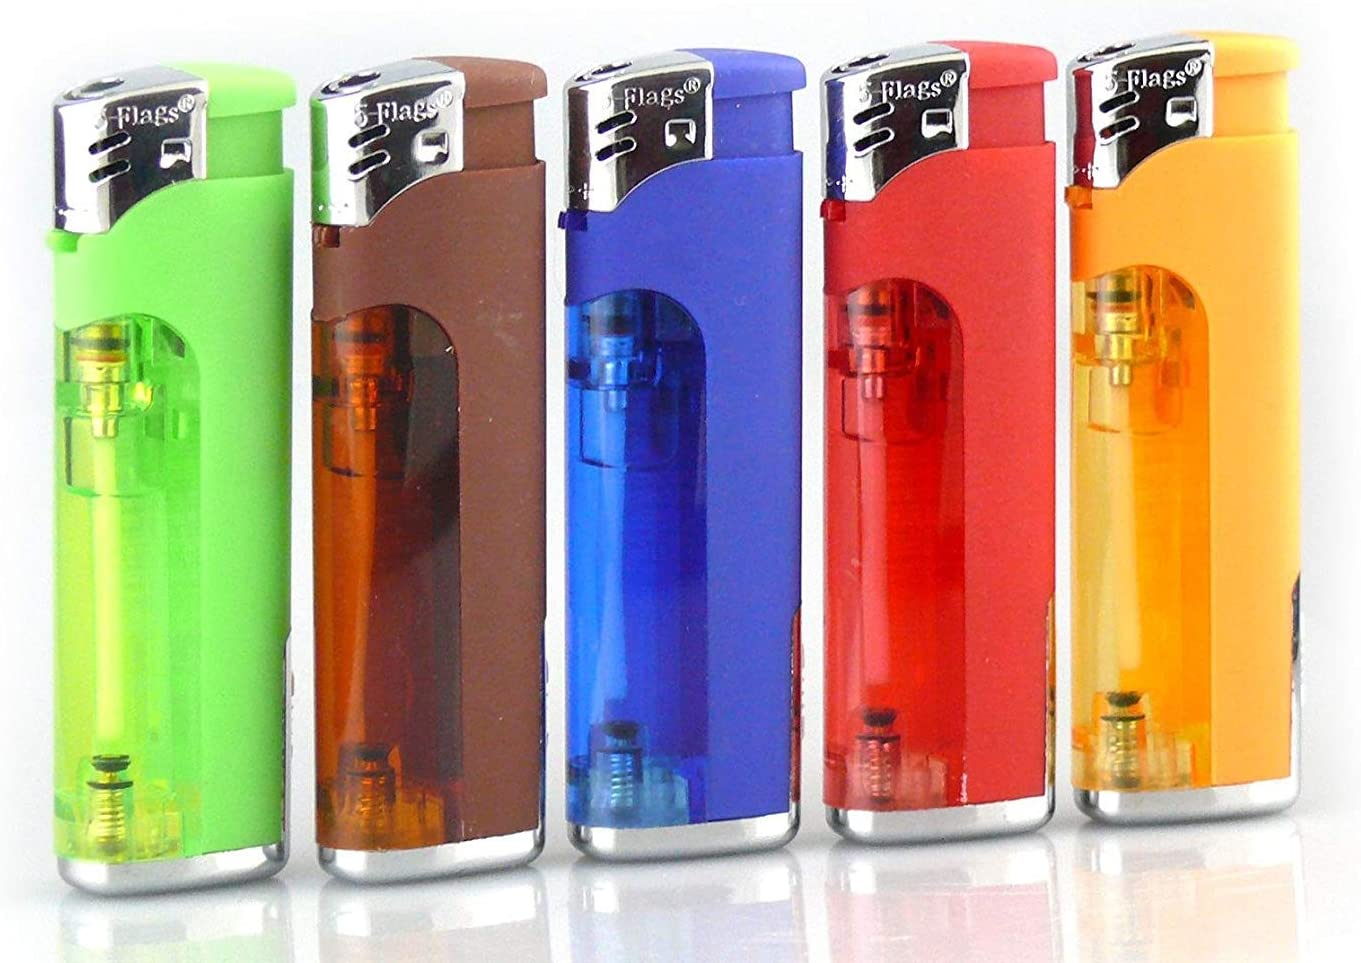 4 PACK ELECTRONIC REFILLABLE LIGHTERS GOOD QUALITY